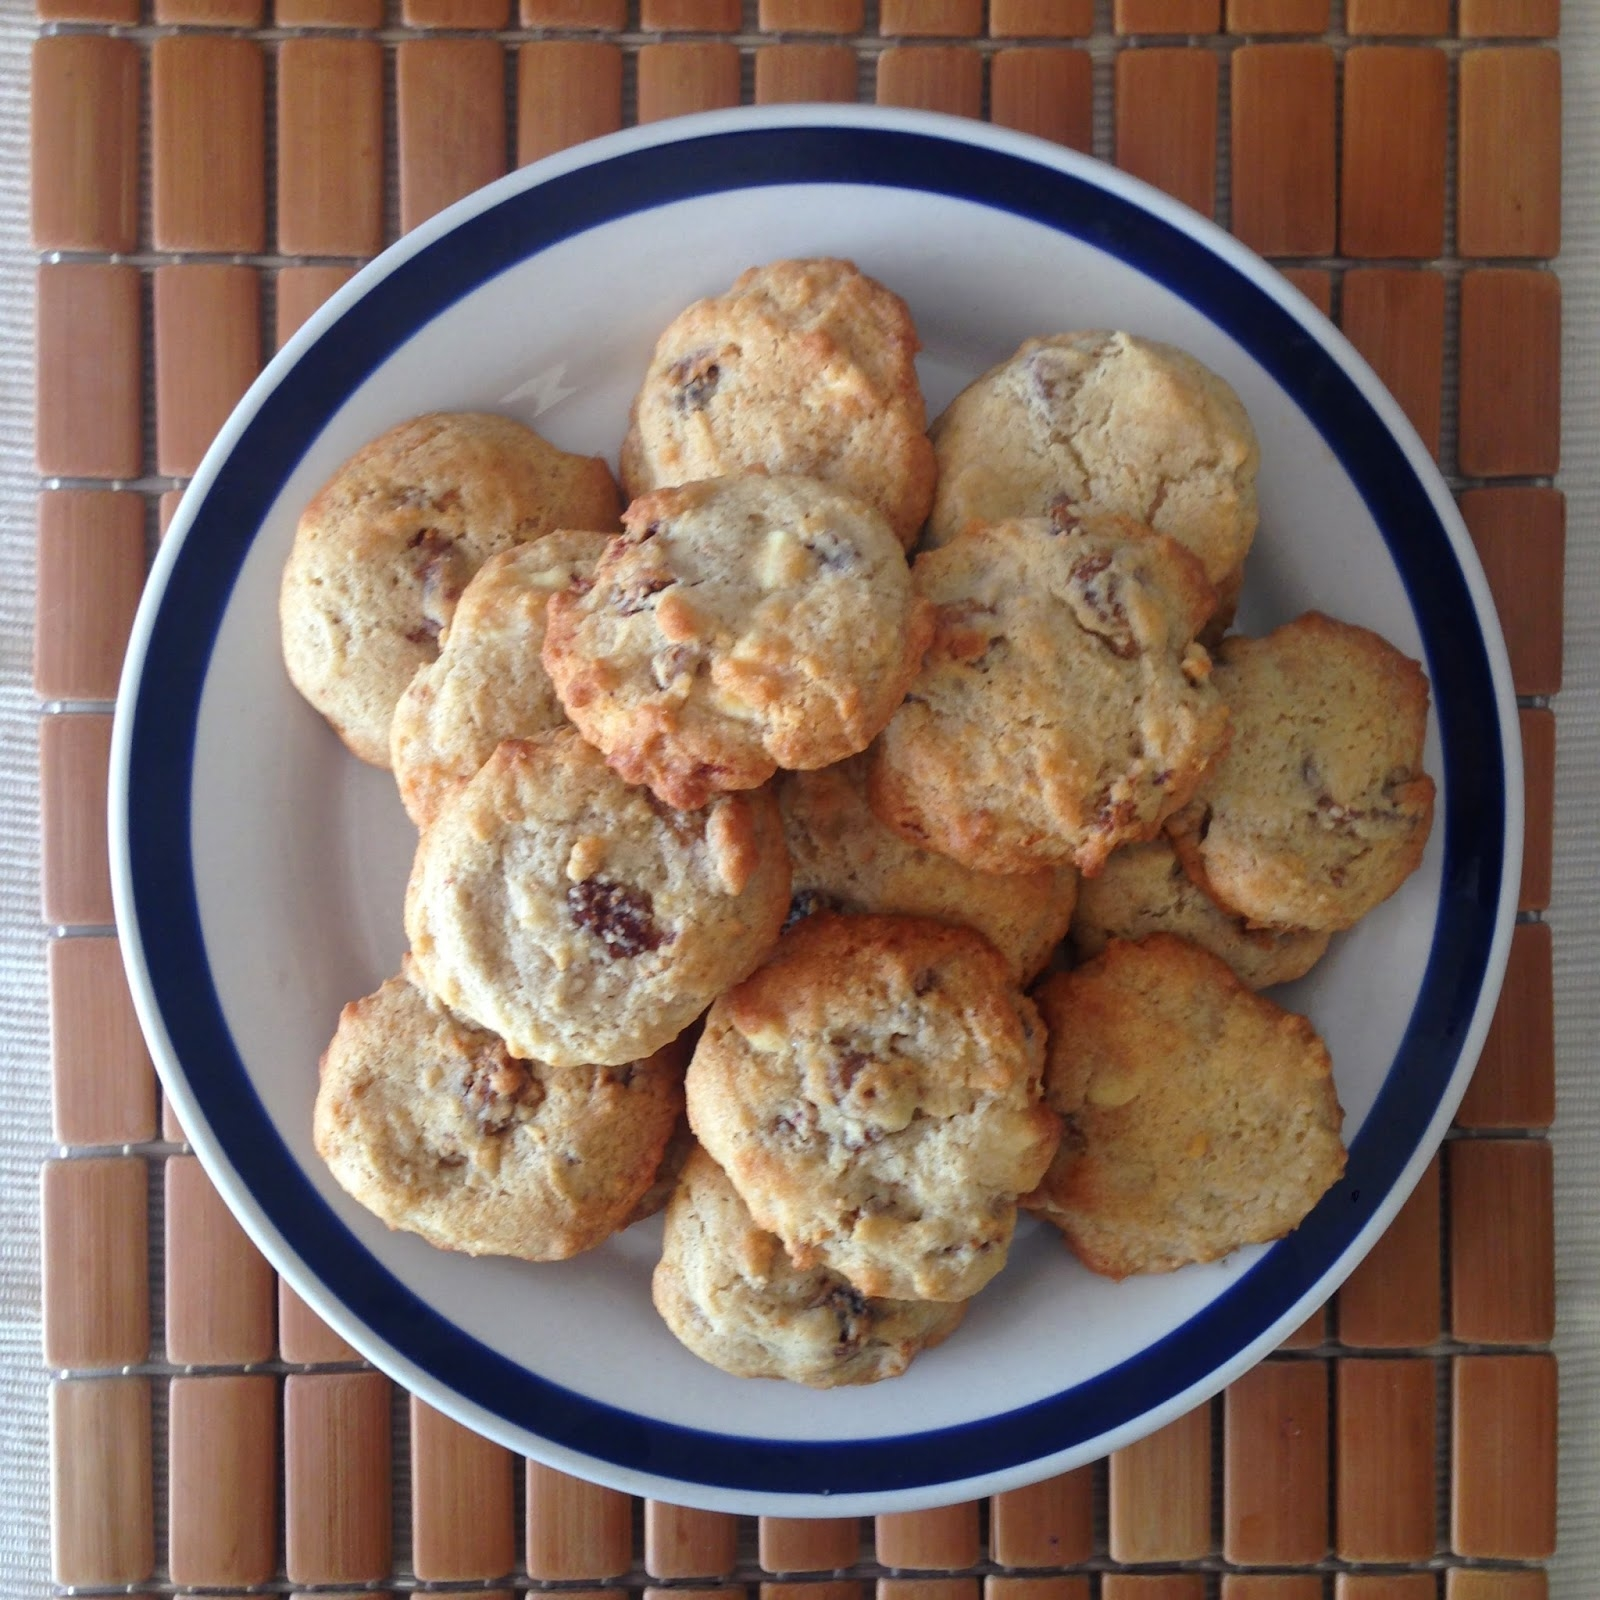 Spiced Fig and White Chocolate Cookies